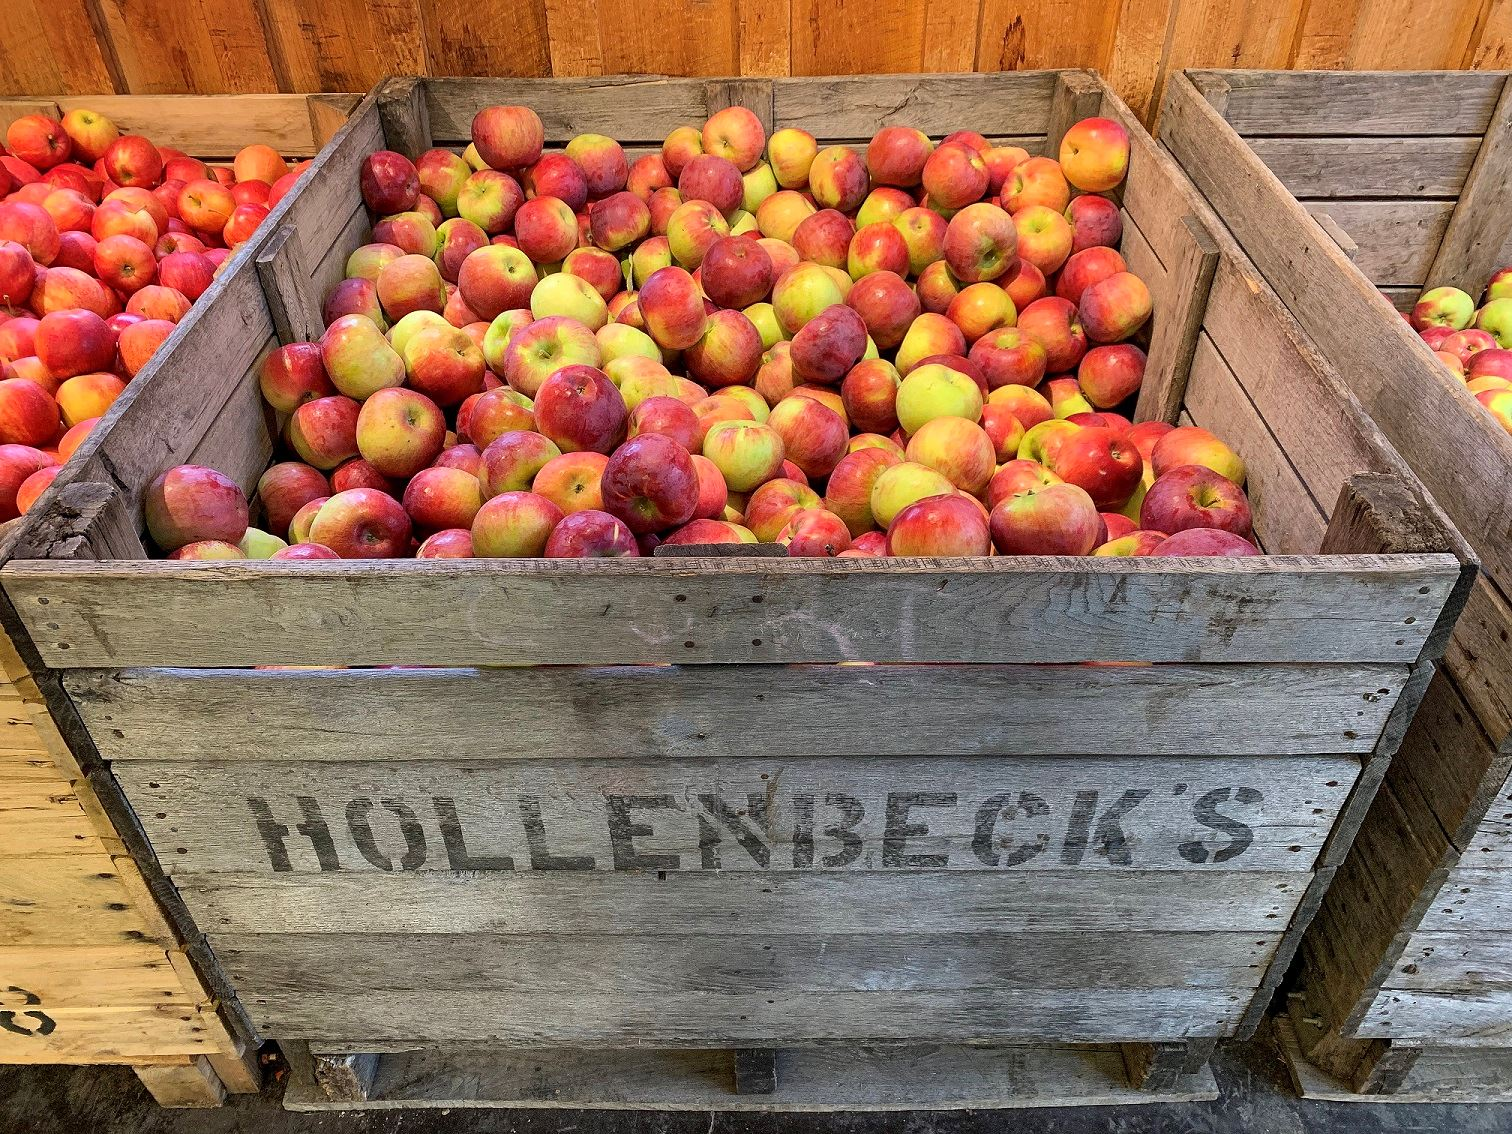 Hollenbecks Cider Mill